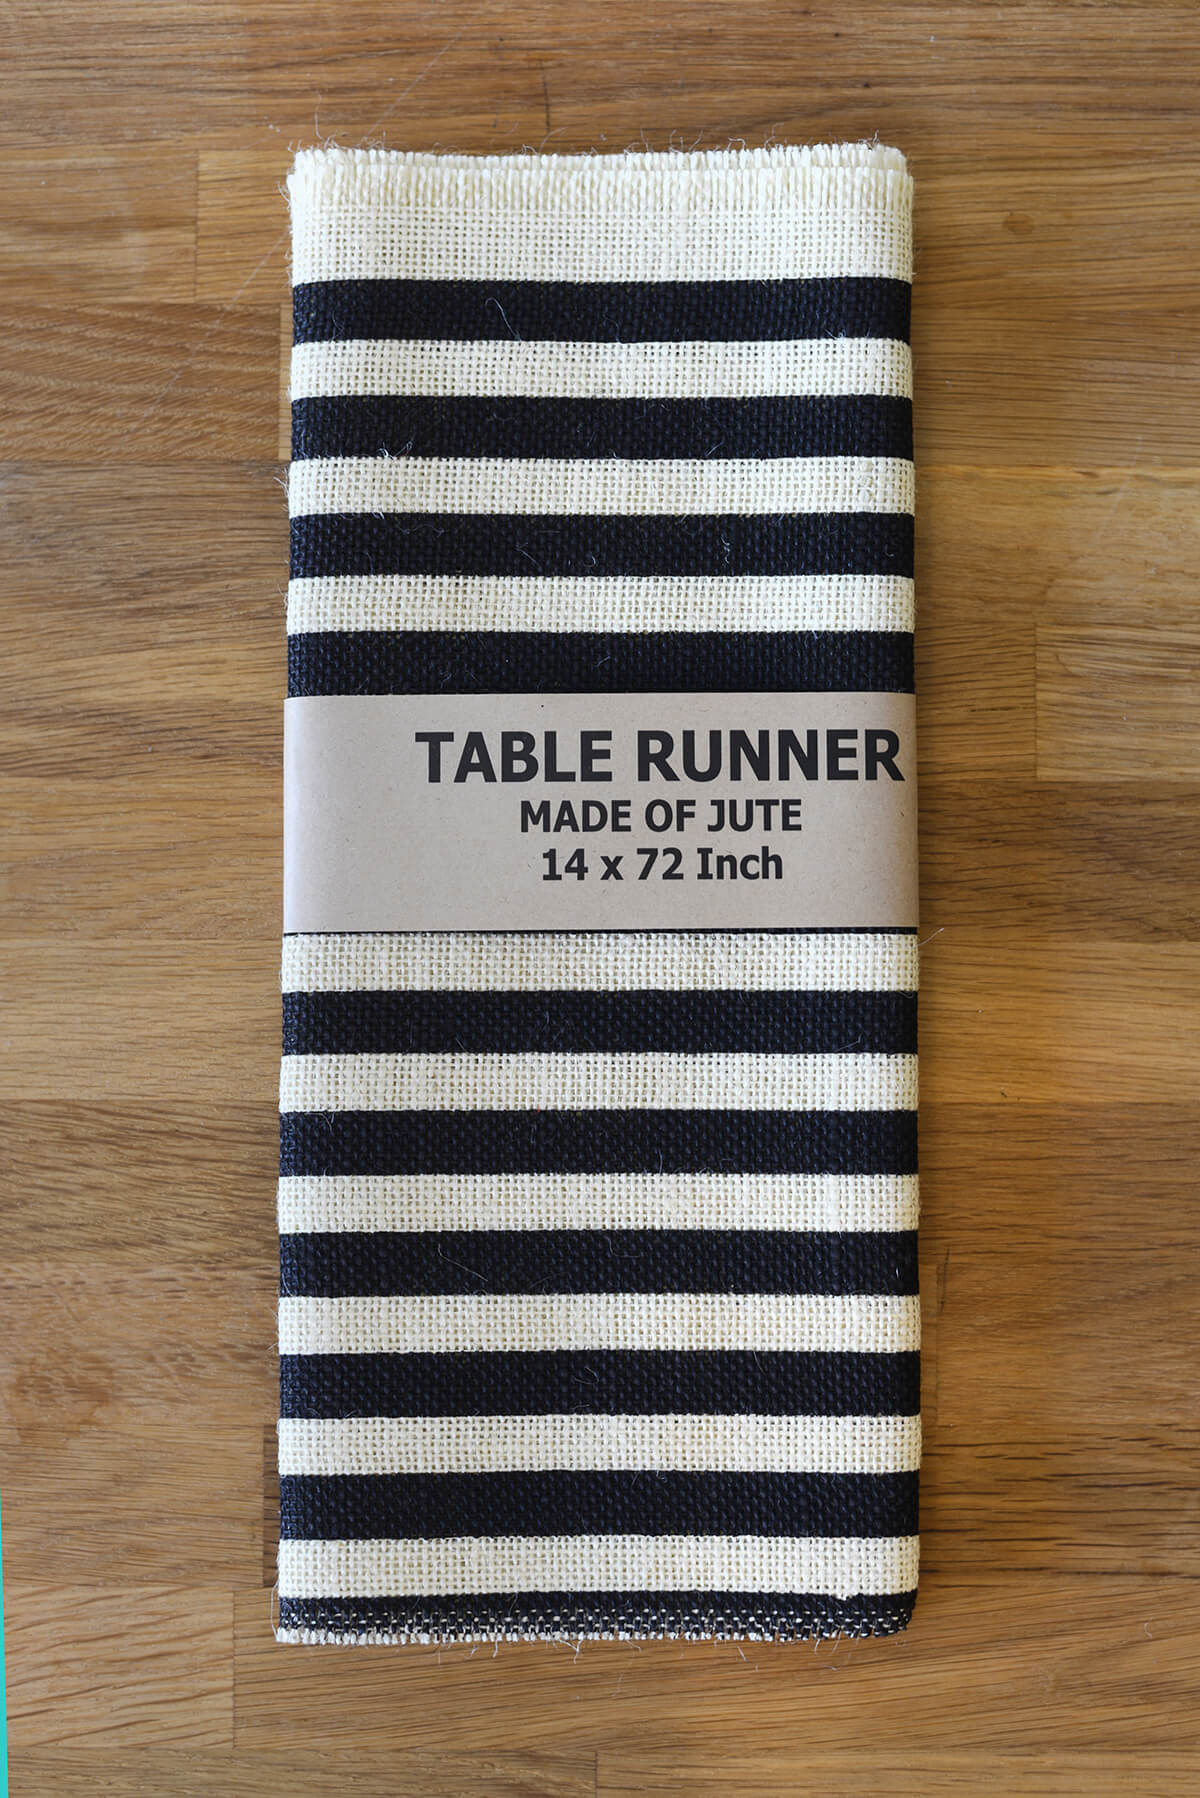 Bamboo black table runner 72 inches checkered kitchen linen dining - Ivory Black Stripes Burlap Table Runner 14x72